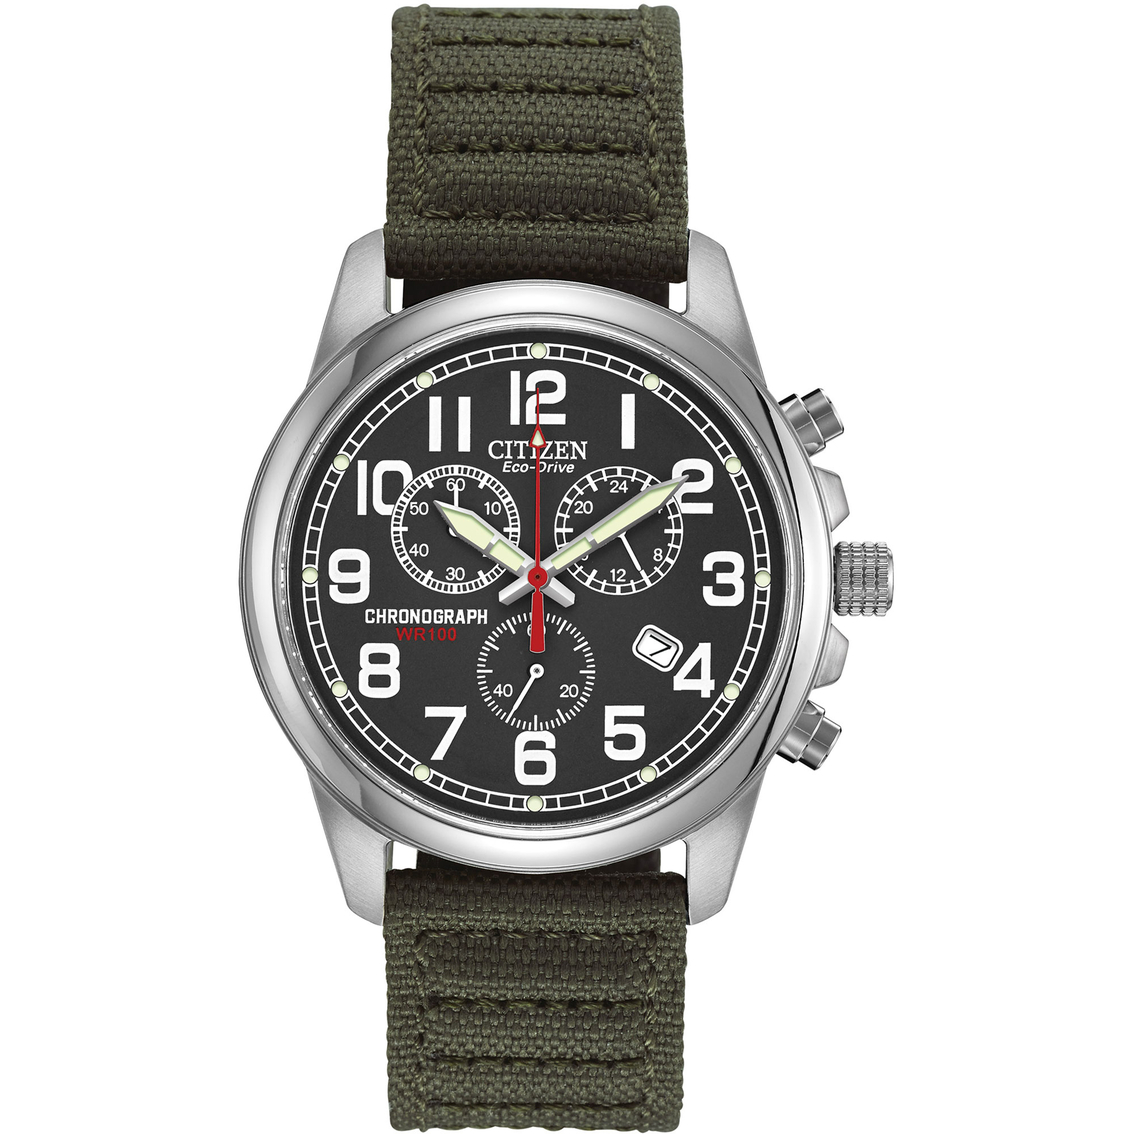 Citizen men 39 s eco drive 39mm watch at0200 05e non metal band father 39 s day shop shop the for Watches zales